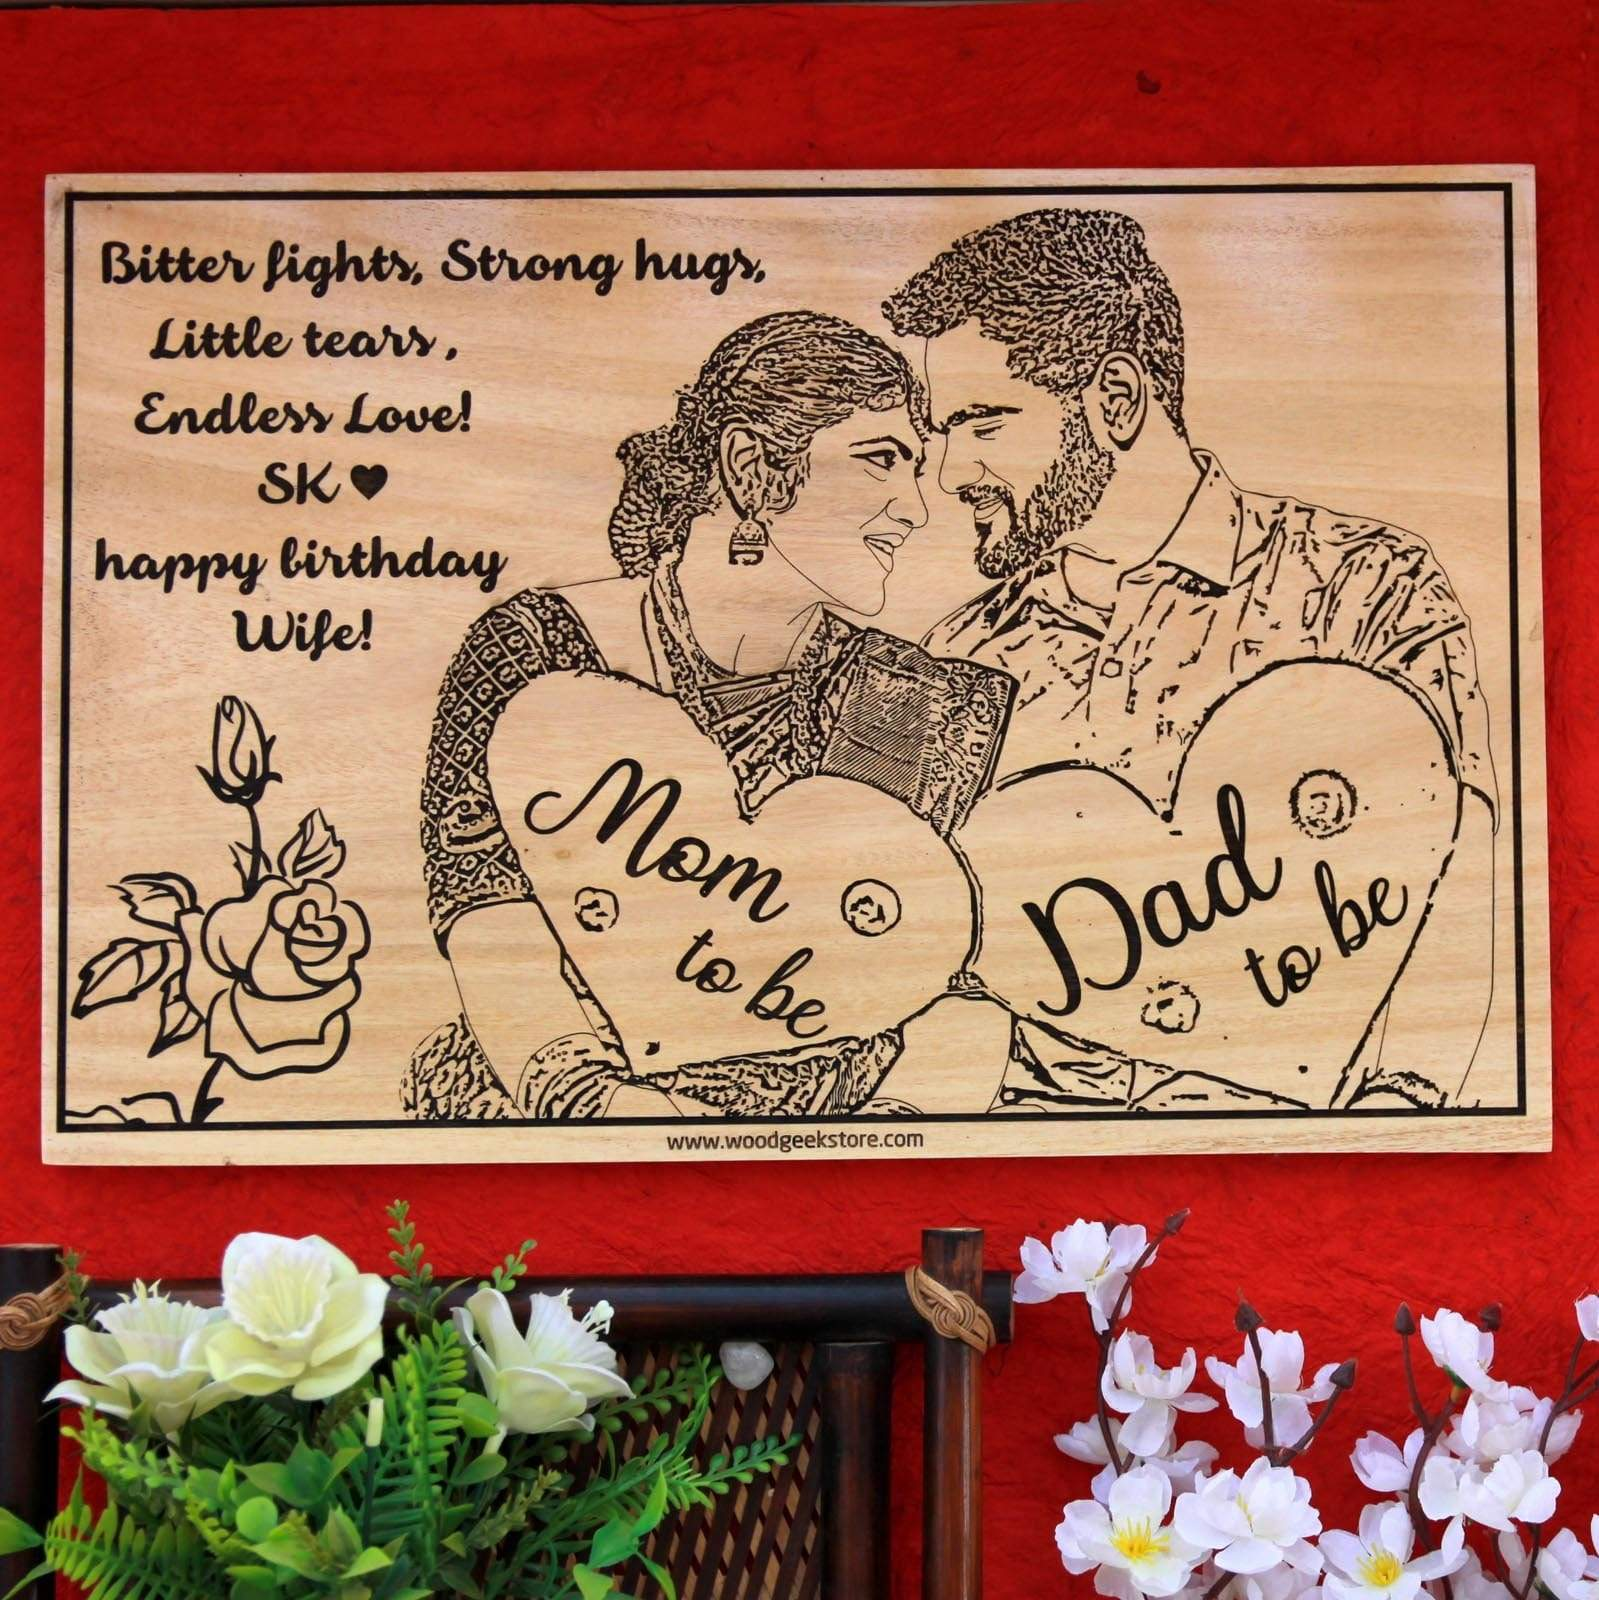 Looking for gifts for new moms and dads? This wood engraved photo is one of the best gift ideas for expecting parents. Looking for gifts for new parents or gifts for expecting parents? This photo on wood makes sentimental gifts for new parents.